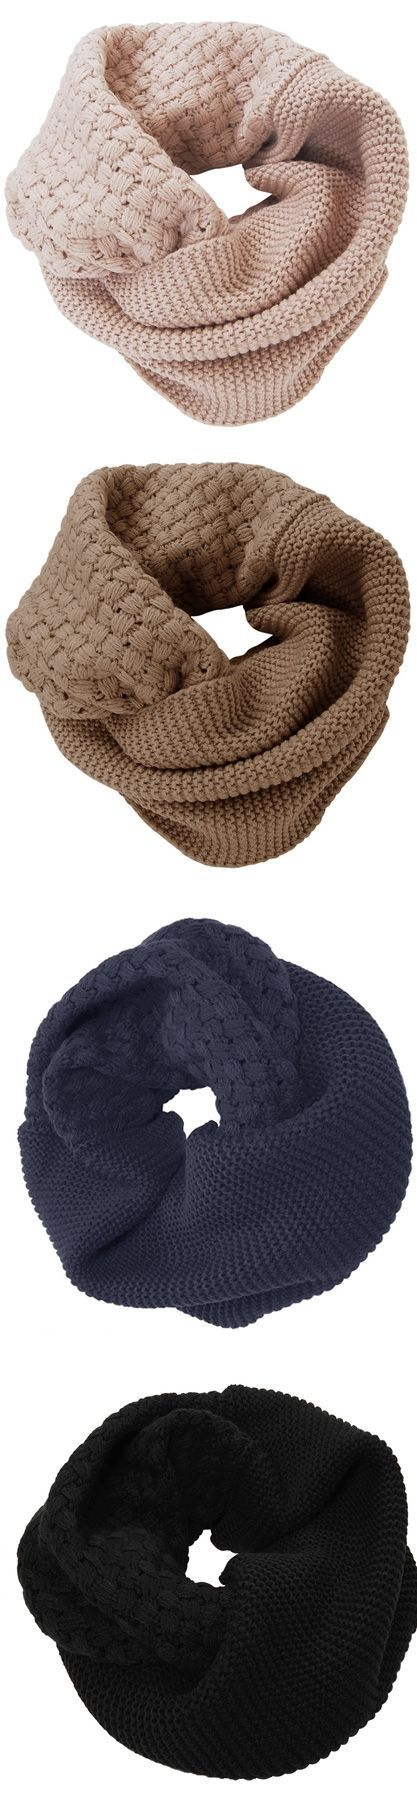 waffle knit circle scarf. perfect for fall!